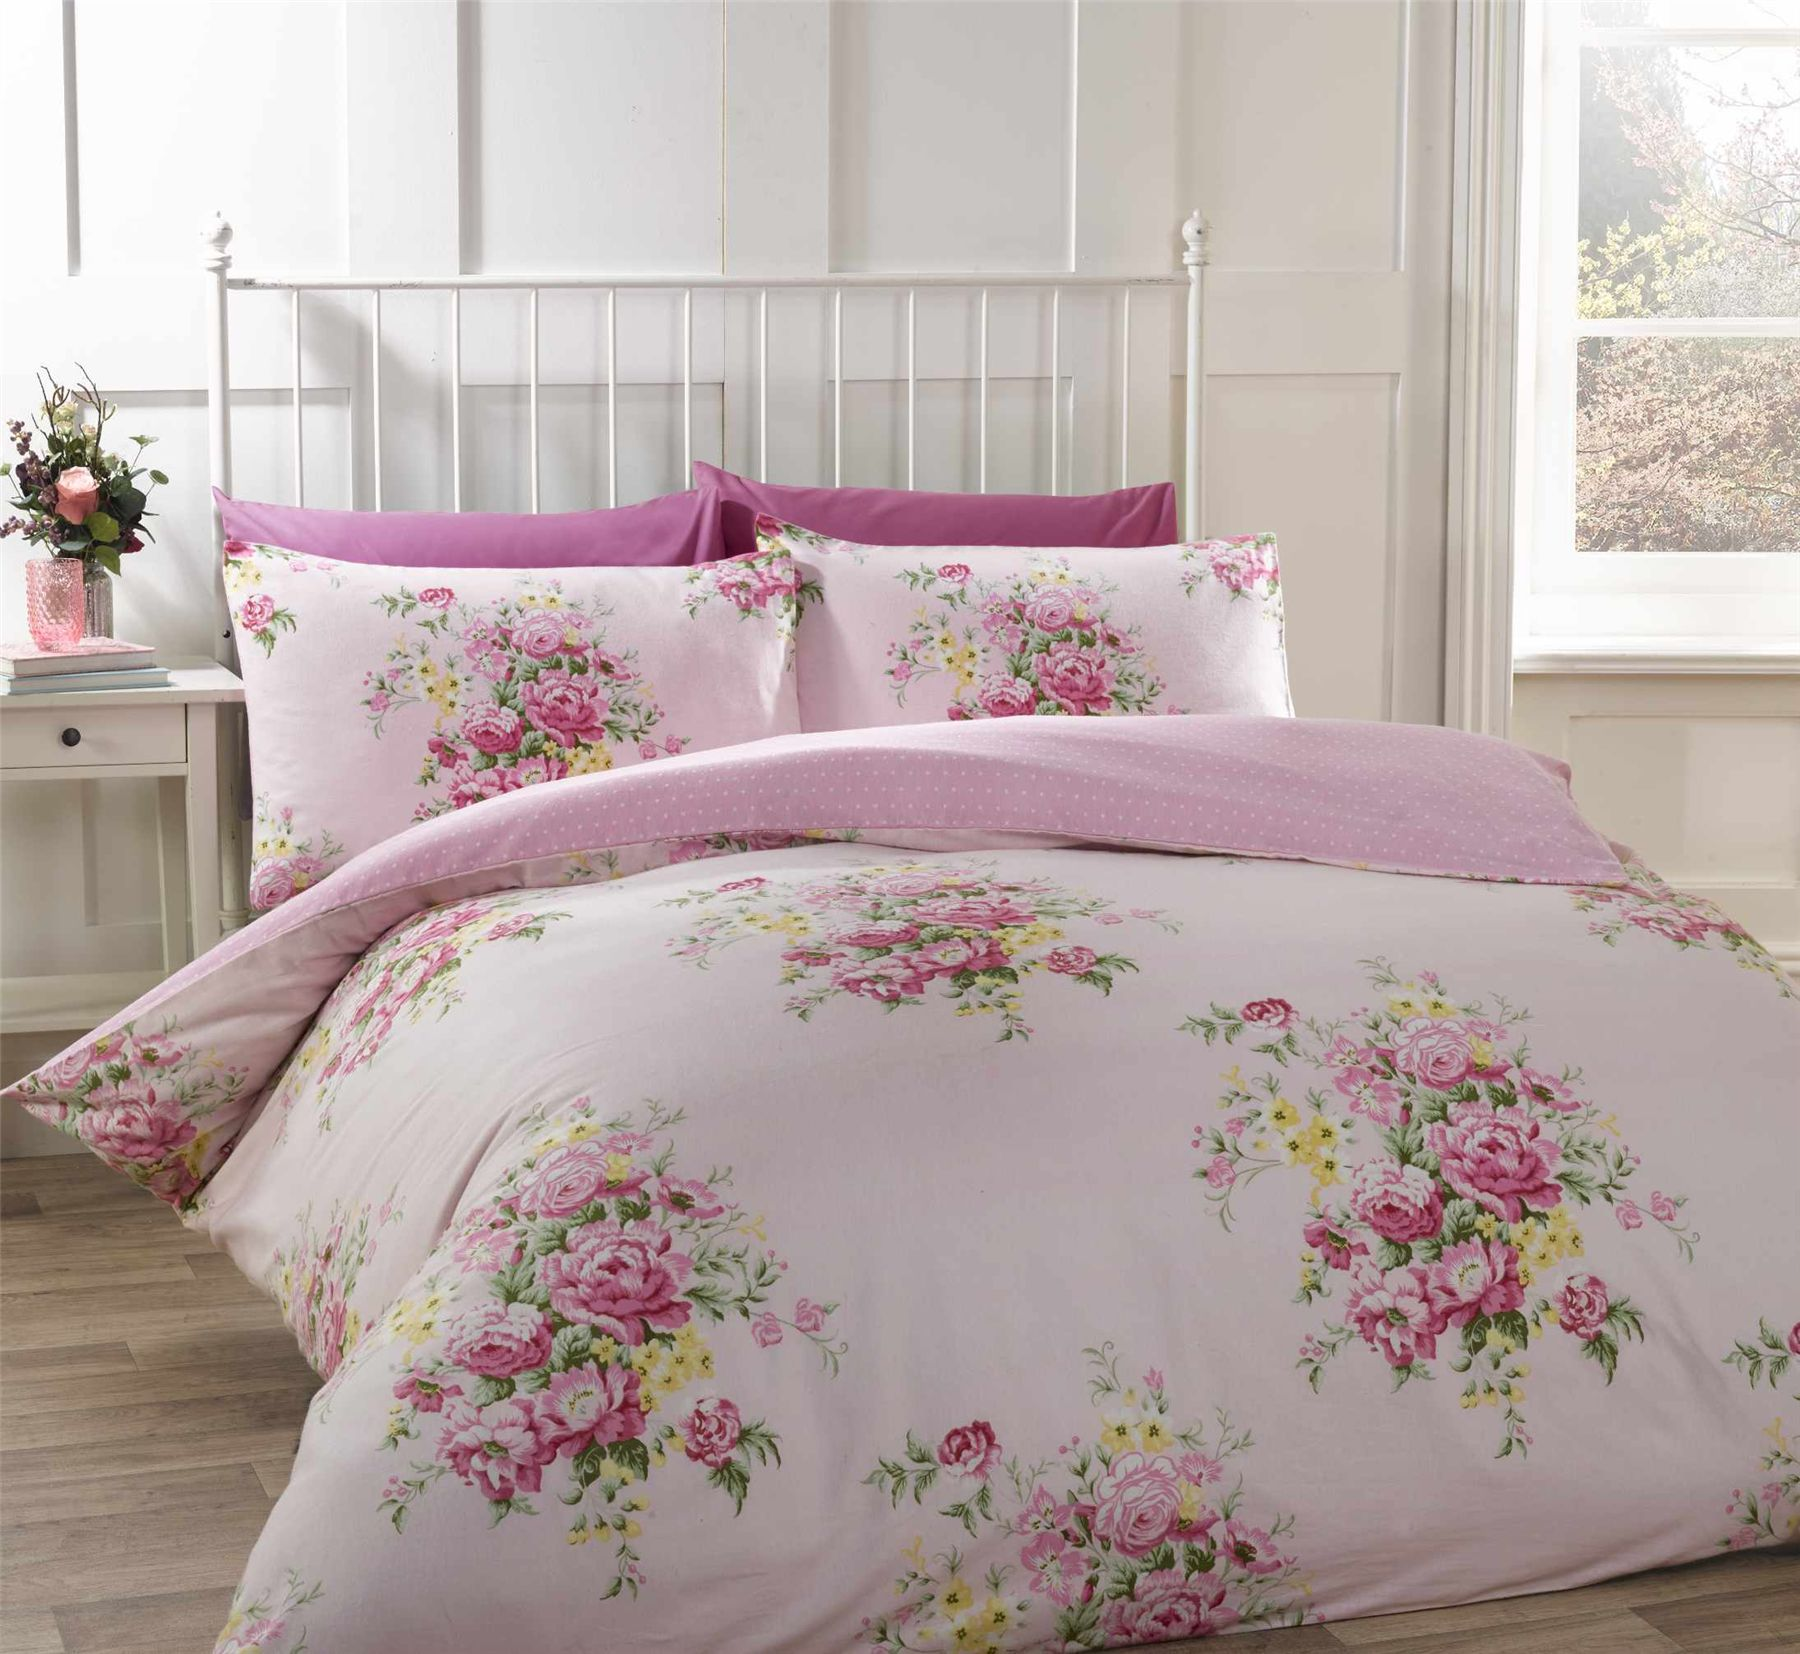 size p dolce king louvre bedding egyptian theme htm duvet covers set mela cotton cover paris price suggested